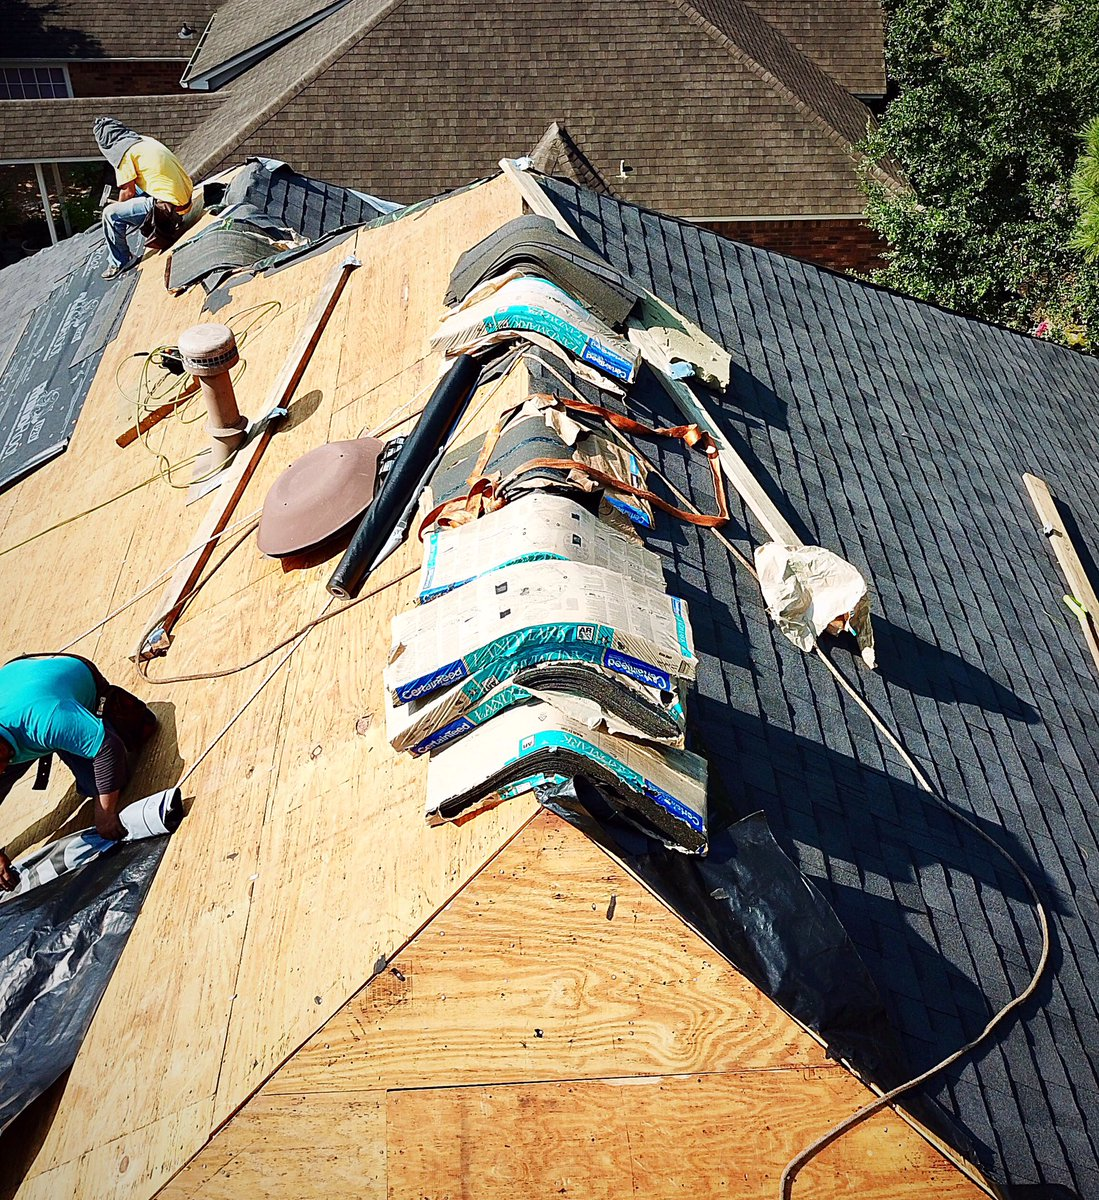 0 Replies 0 Retweets 0 Likes. Image Number 19 Of Spartan Roofing ...